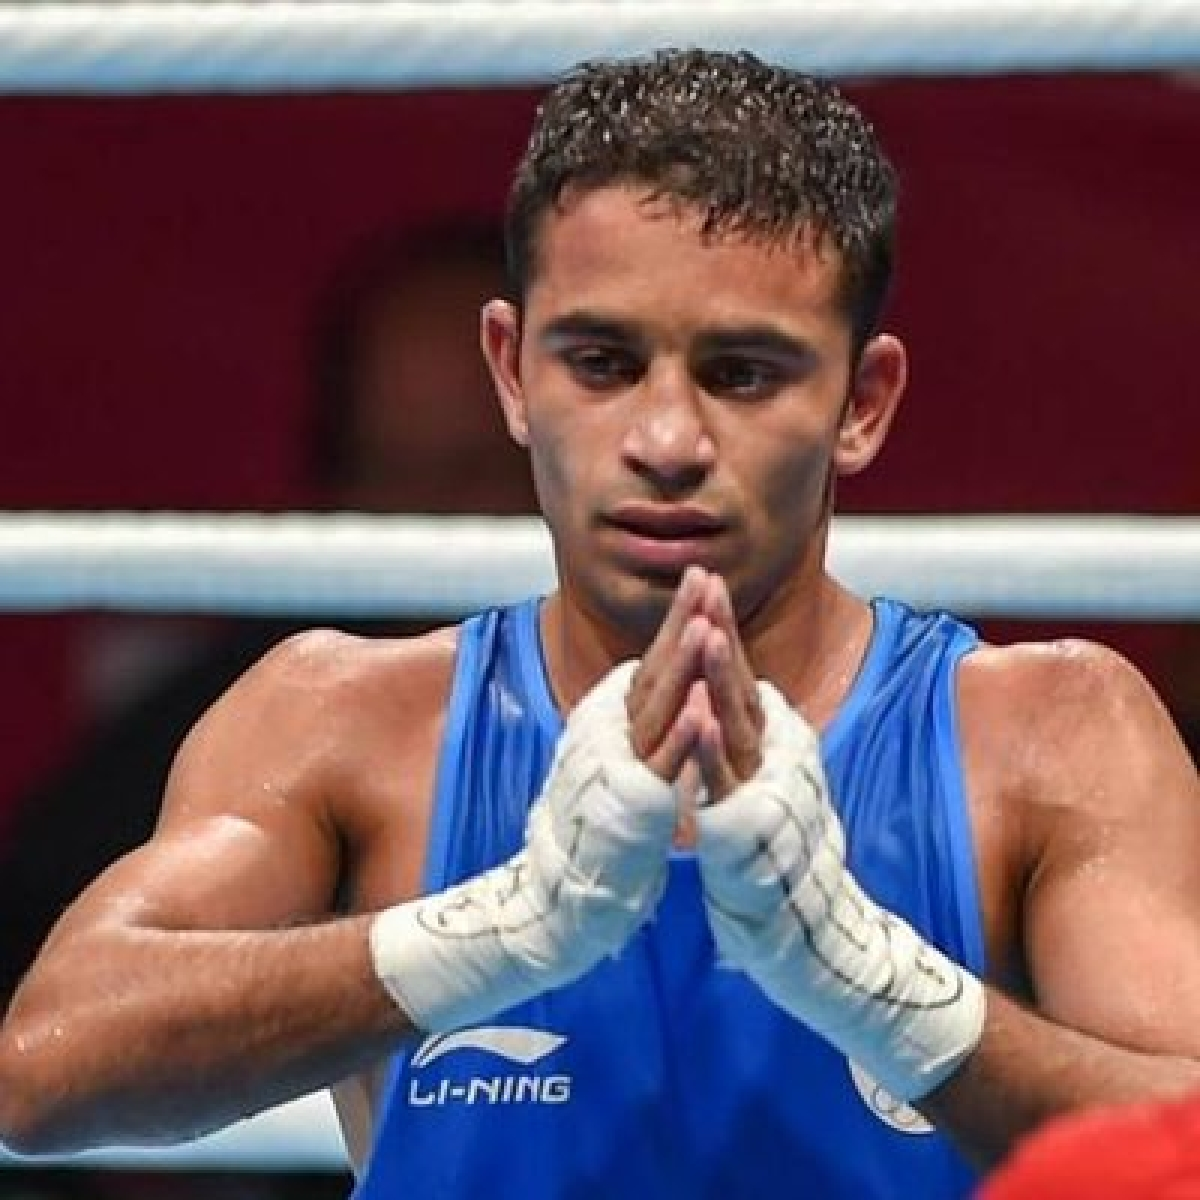 Boxing season starts: Amit Panghal aims 2nd successive gold at Strandja Memorial